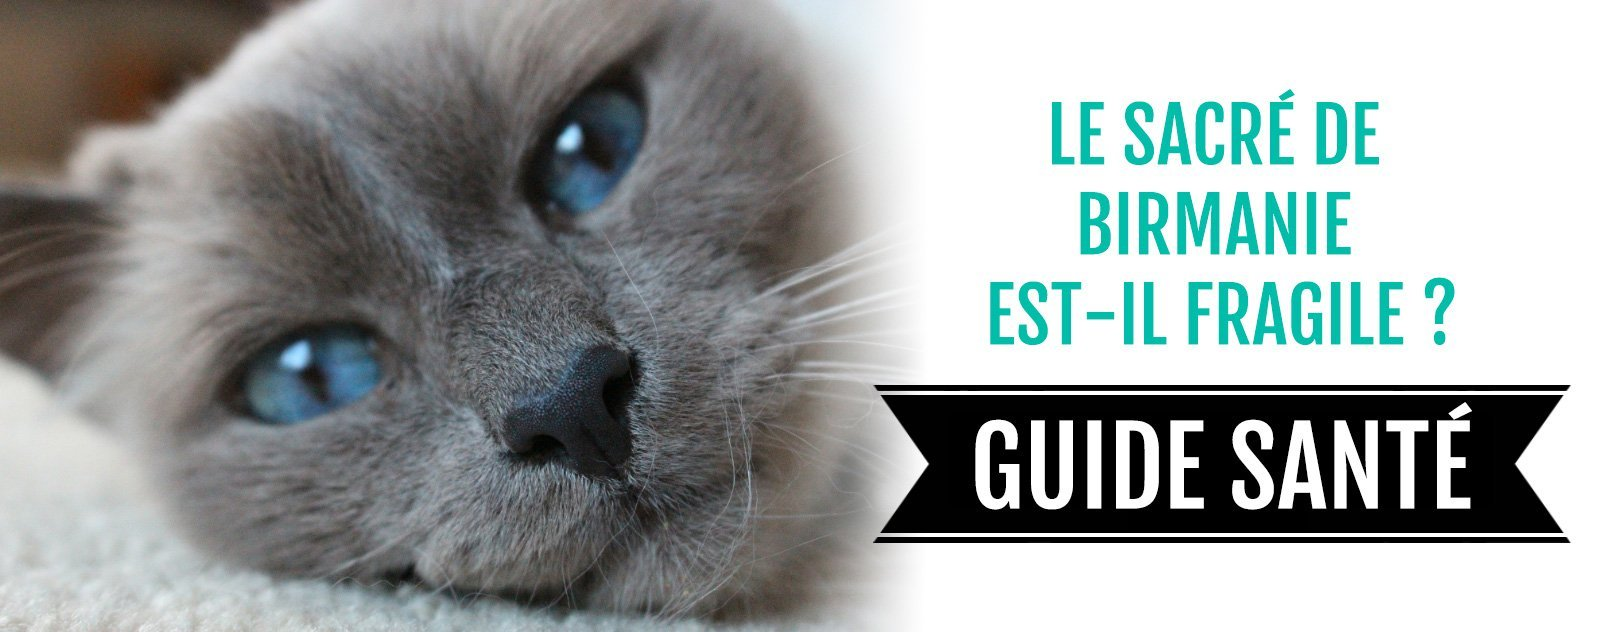 blog sacré de birmanie fragile